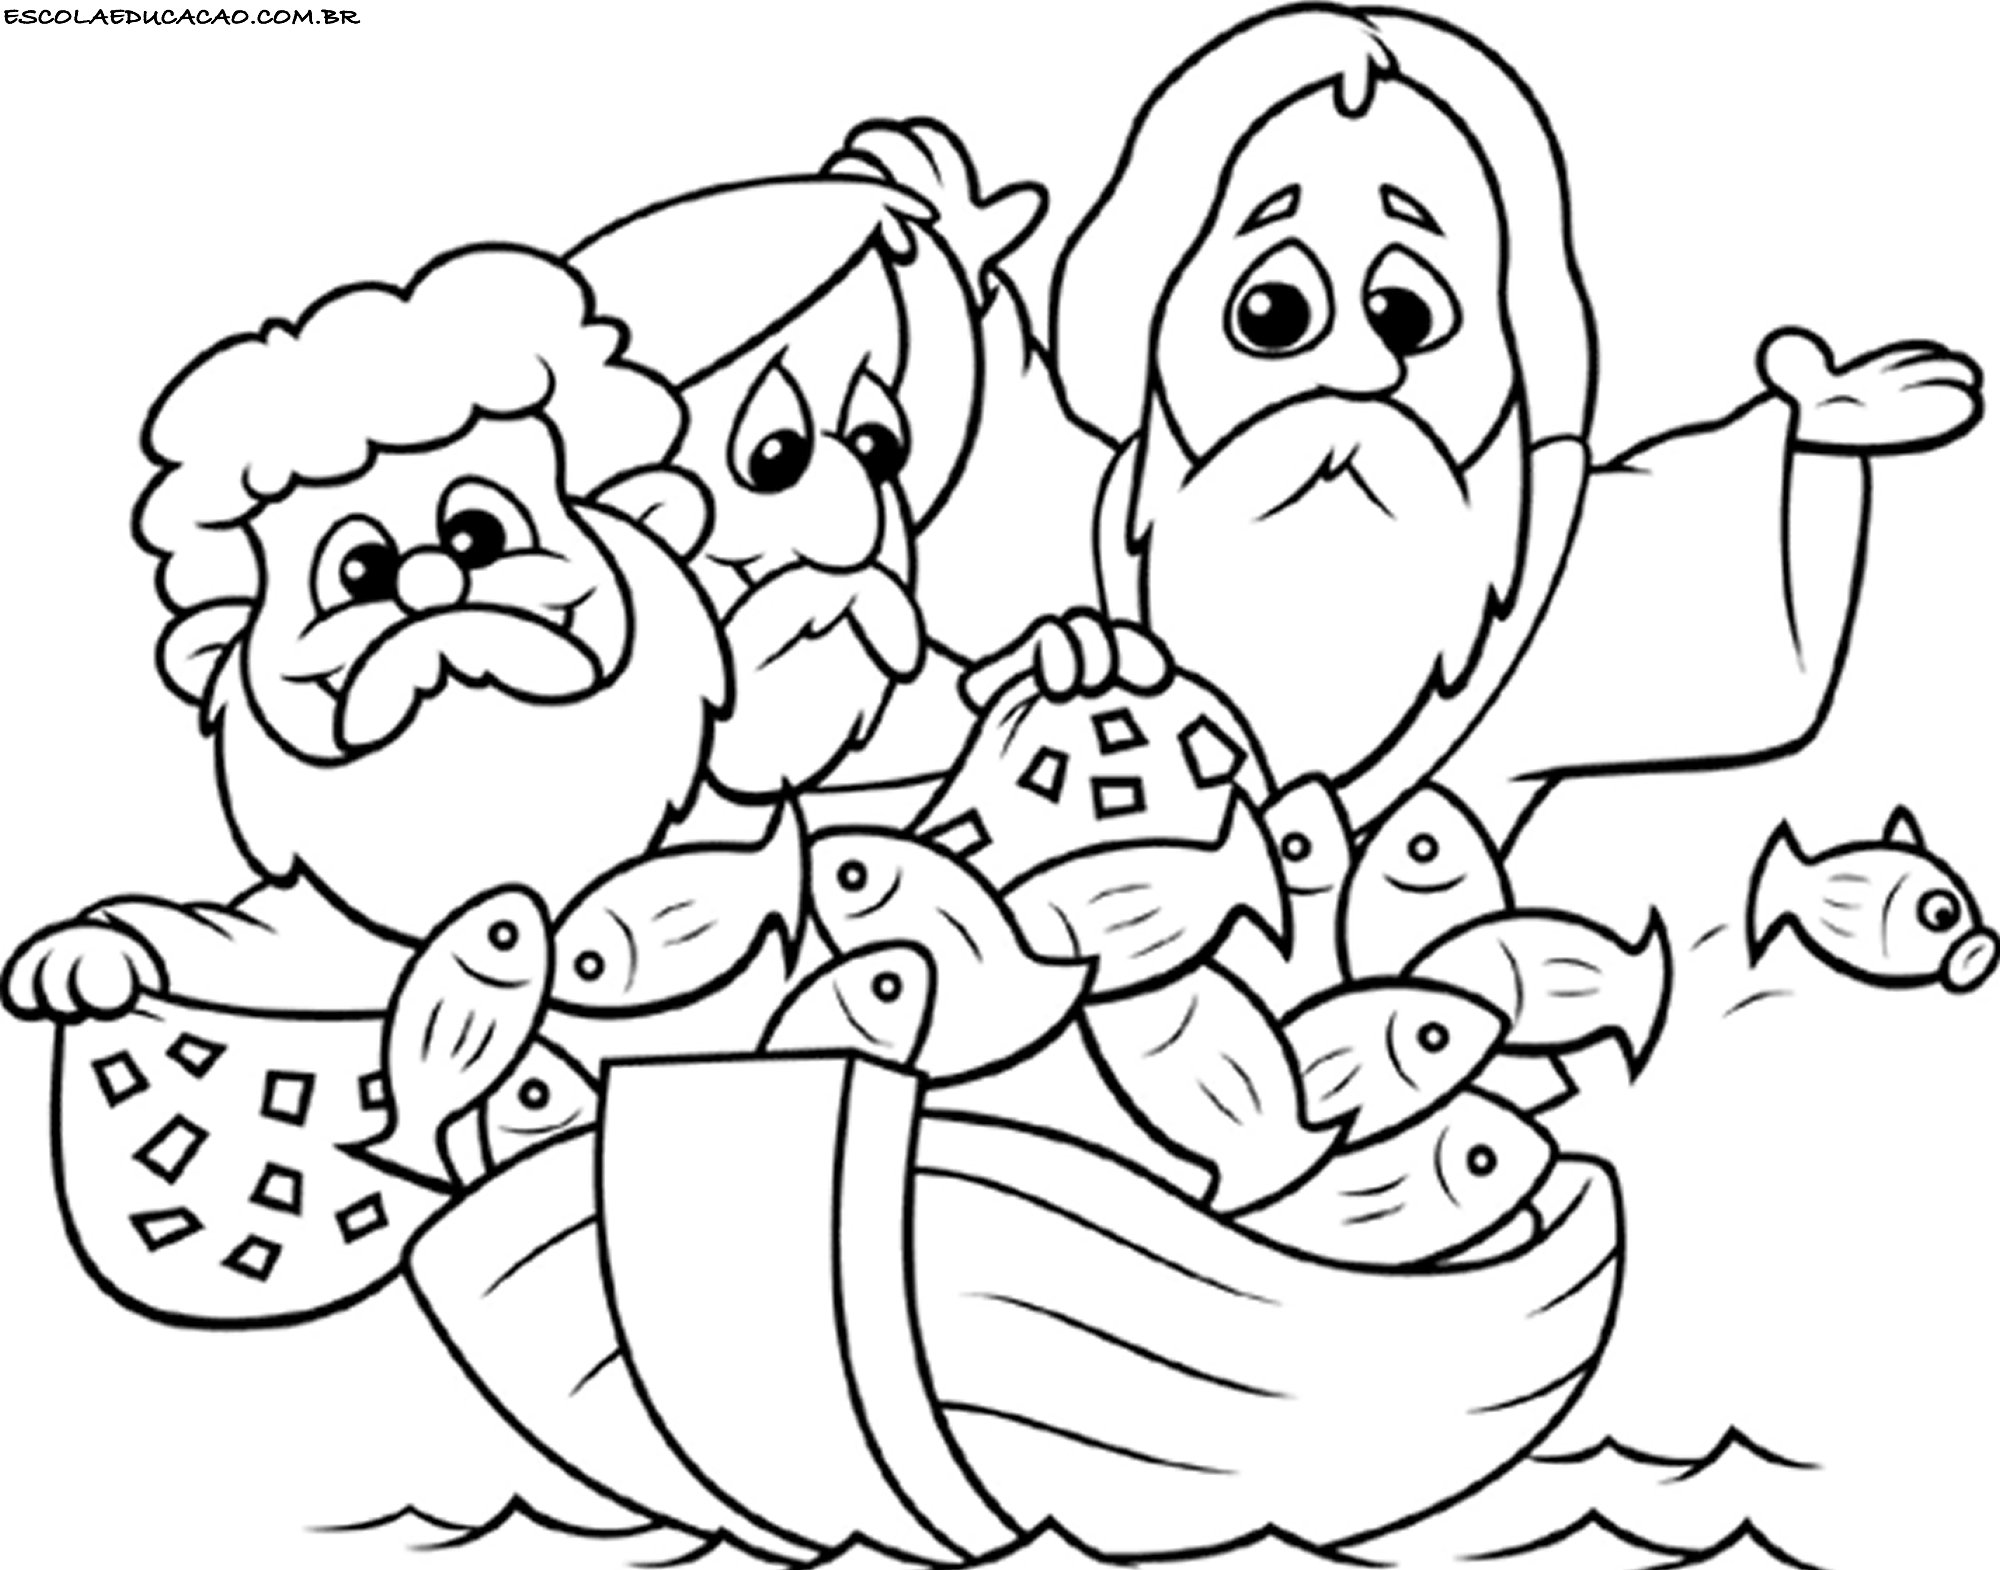 Desenhos para colorir e imprimir escola educa o for Bible story color pages